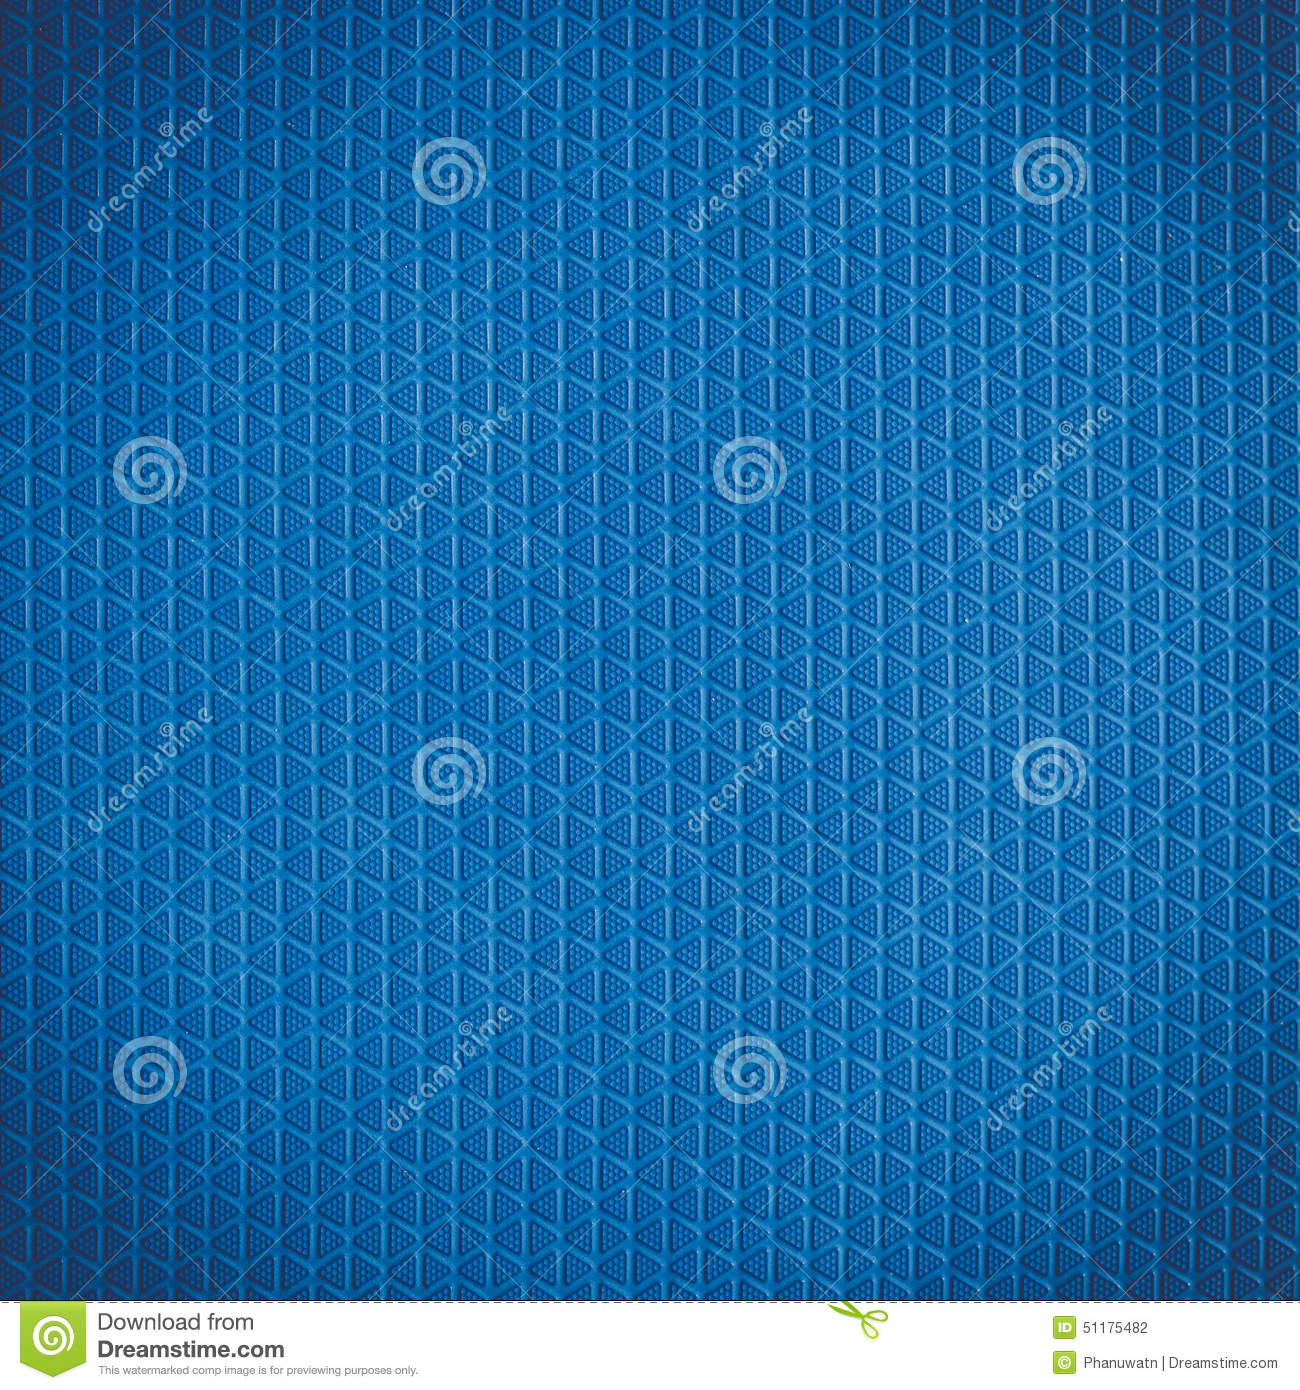 Rubber floor mats for boats - Blue Rubber Pattern Use On Floor Of Speed Boat